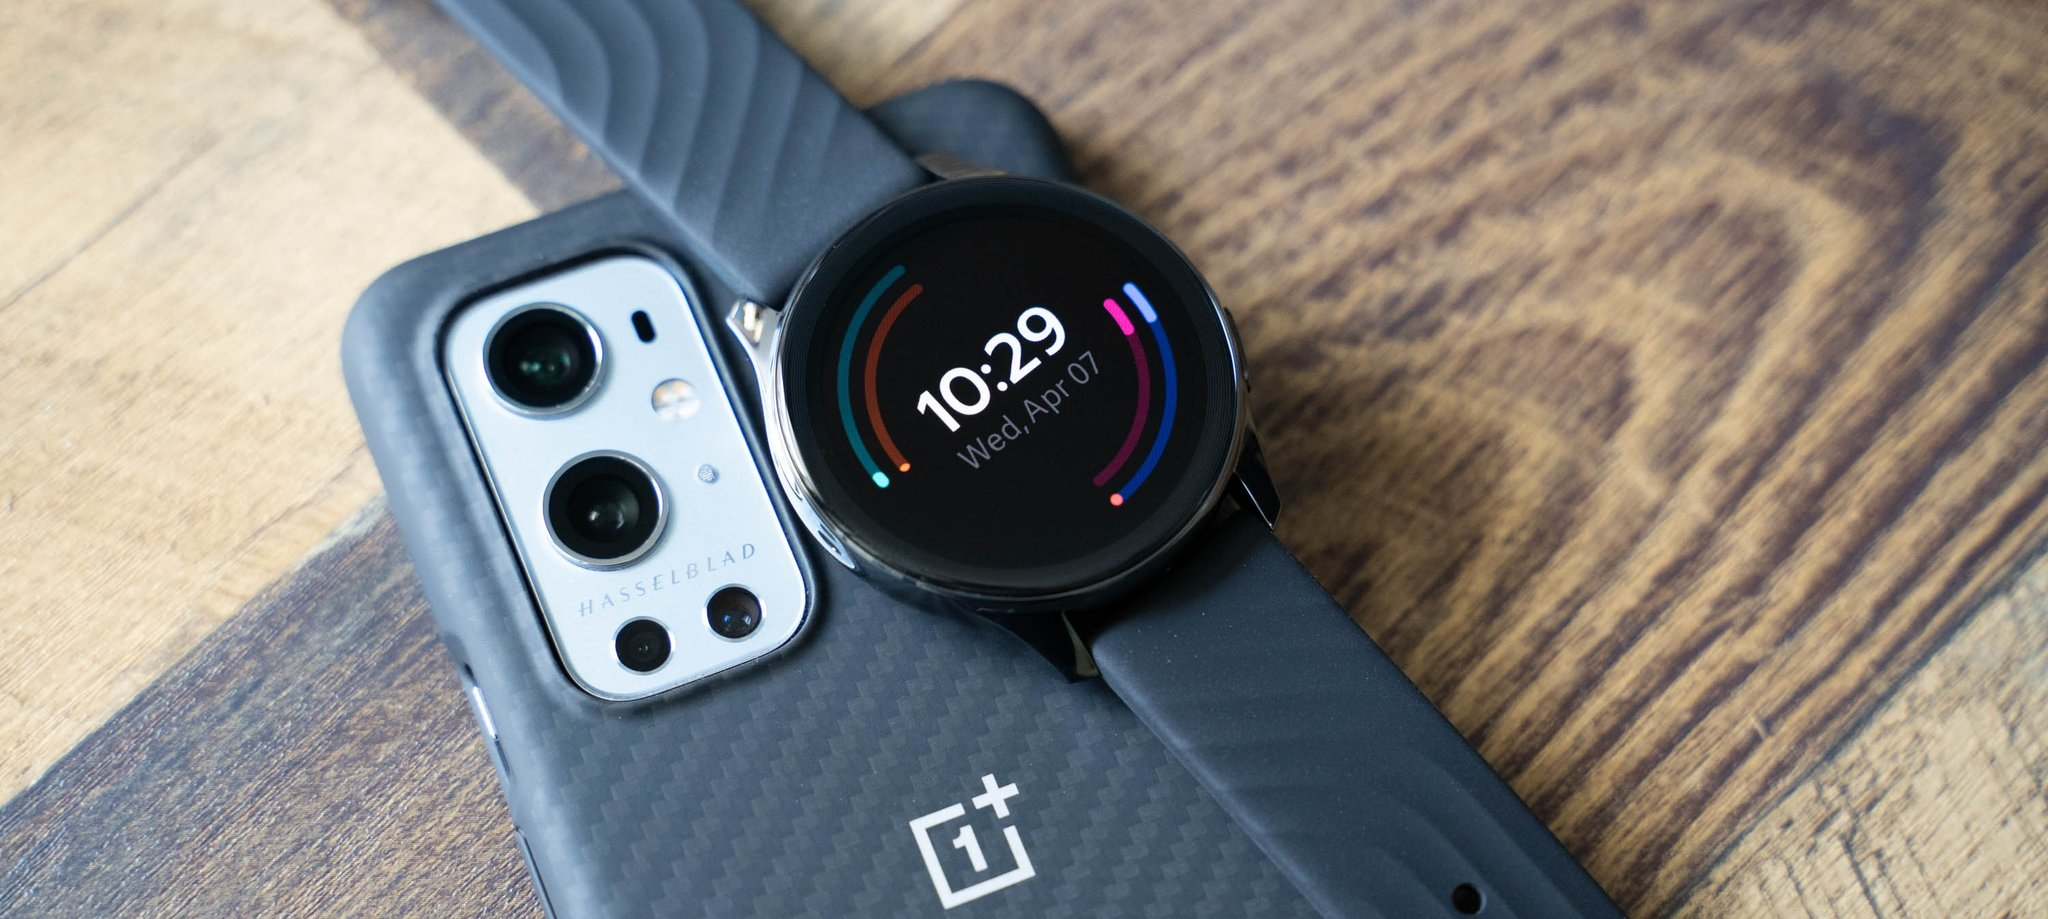 OnePlus Releases New Update For OnePlus Watch Which Improves GPS Performance, Activity Tracking And Lot More